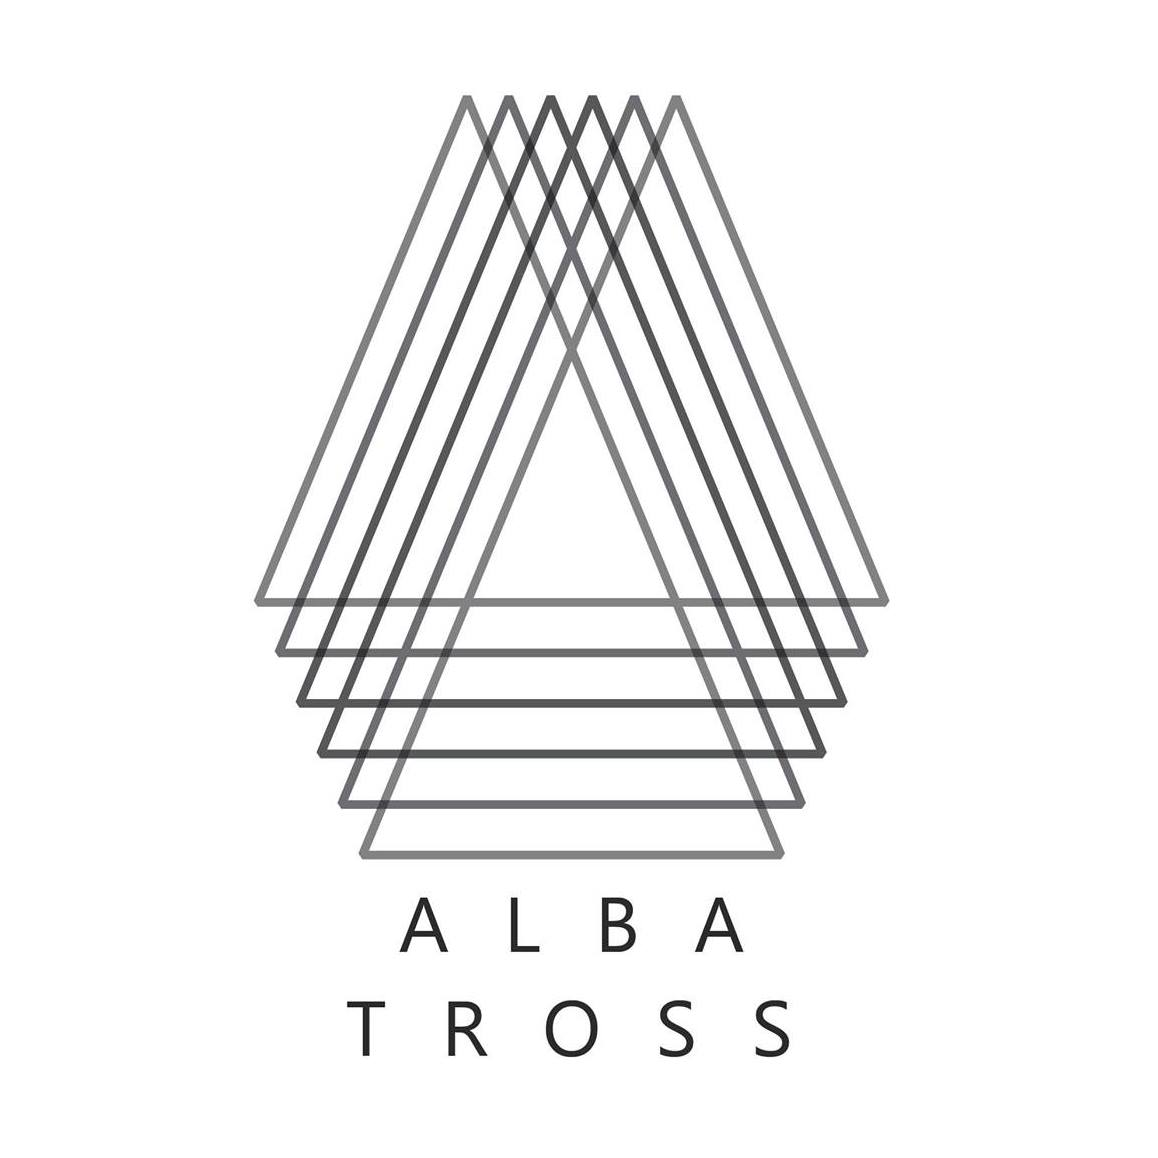 Bar Albatross Oslo, logo designed by Morten Engebretsen